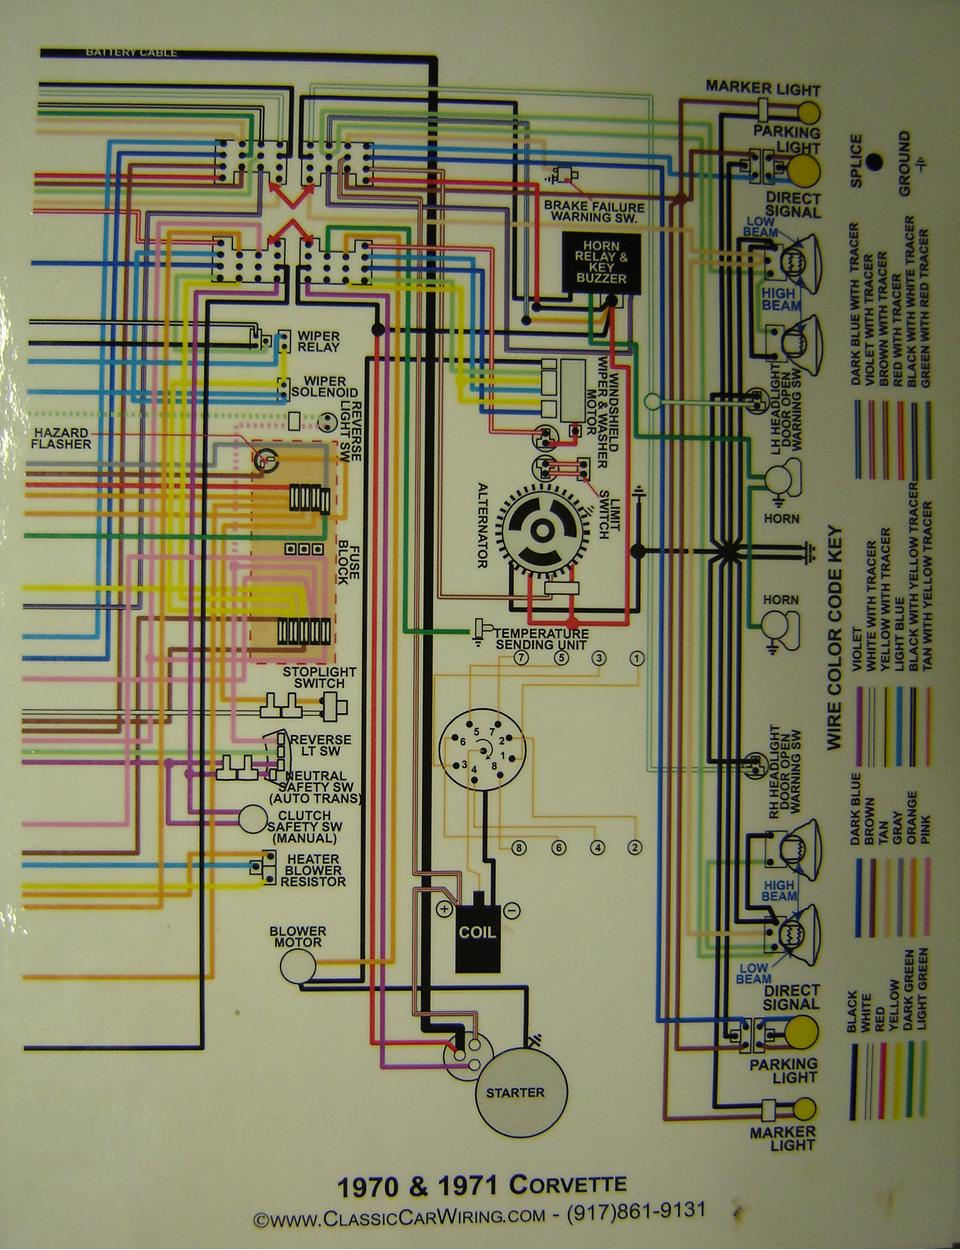 1970 71 corvette color wiring diagram B chevy diagrams 1989 corvette engine wiring harness at edmiracle.co